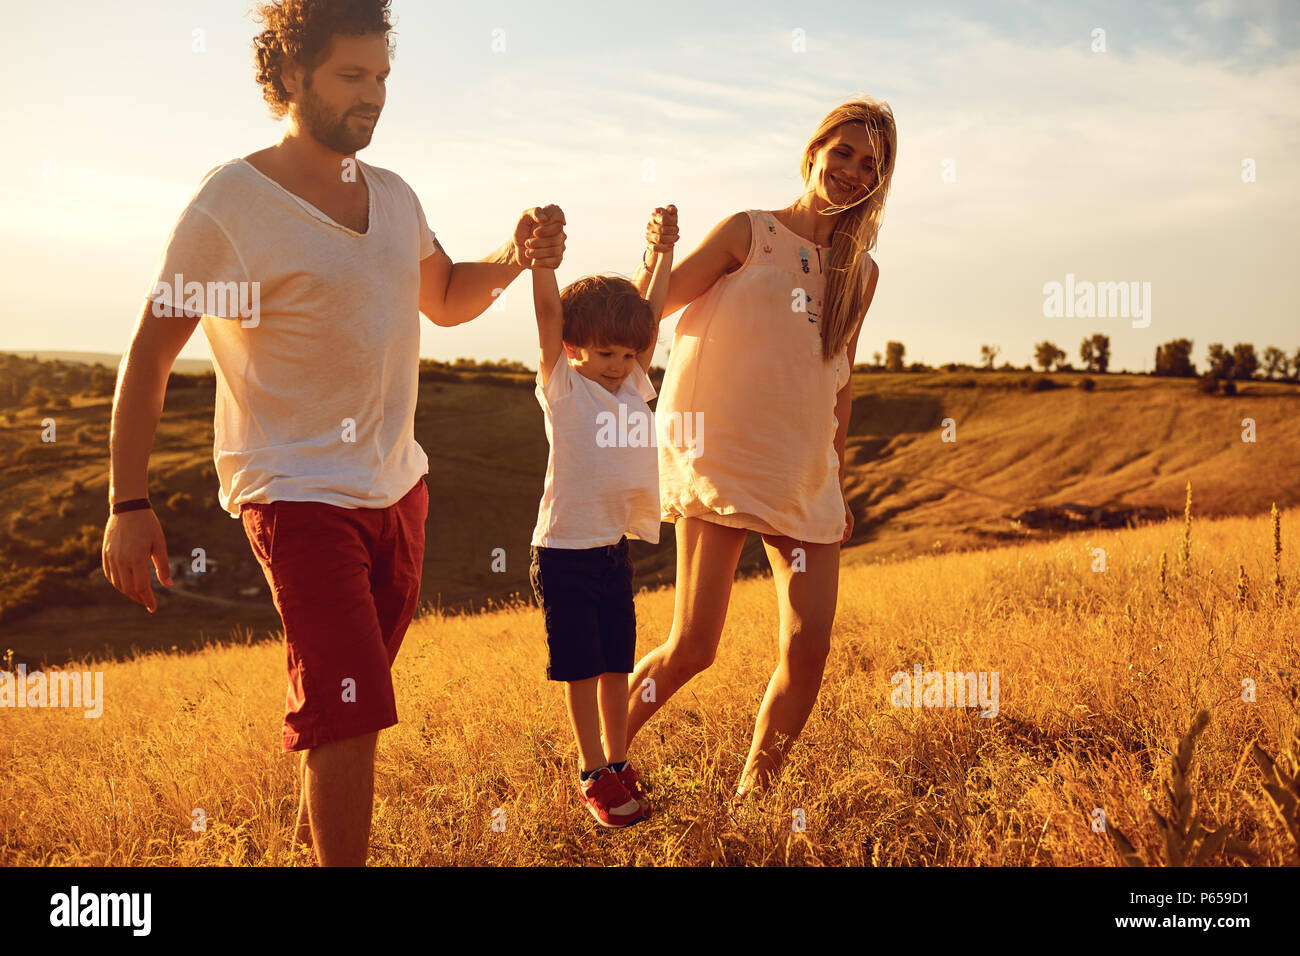 Happy family having fun playing at sunset. - Stock Image